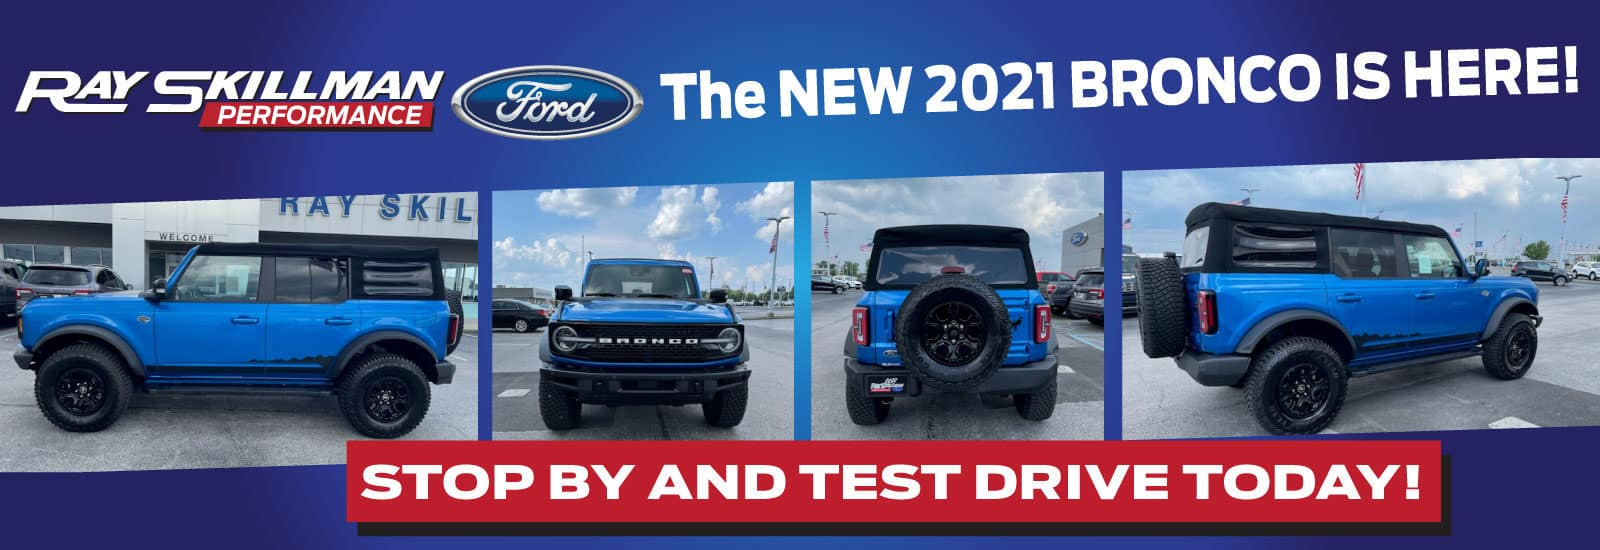 Performance-Ford-2021-Ford-Bronco-Web-Banner-1600×550